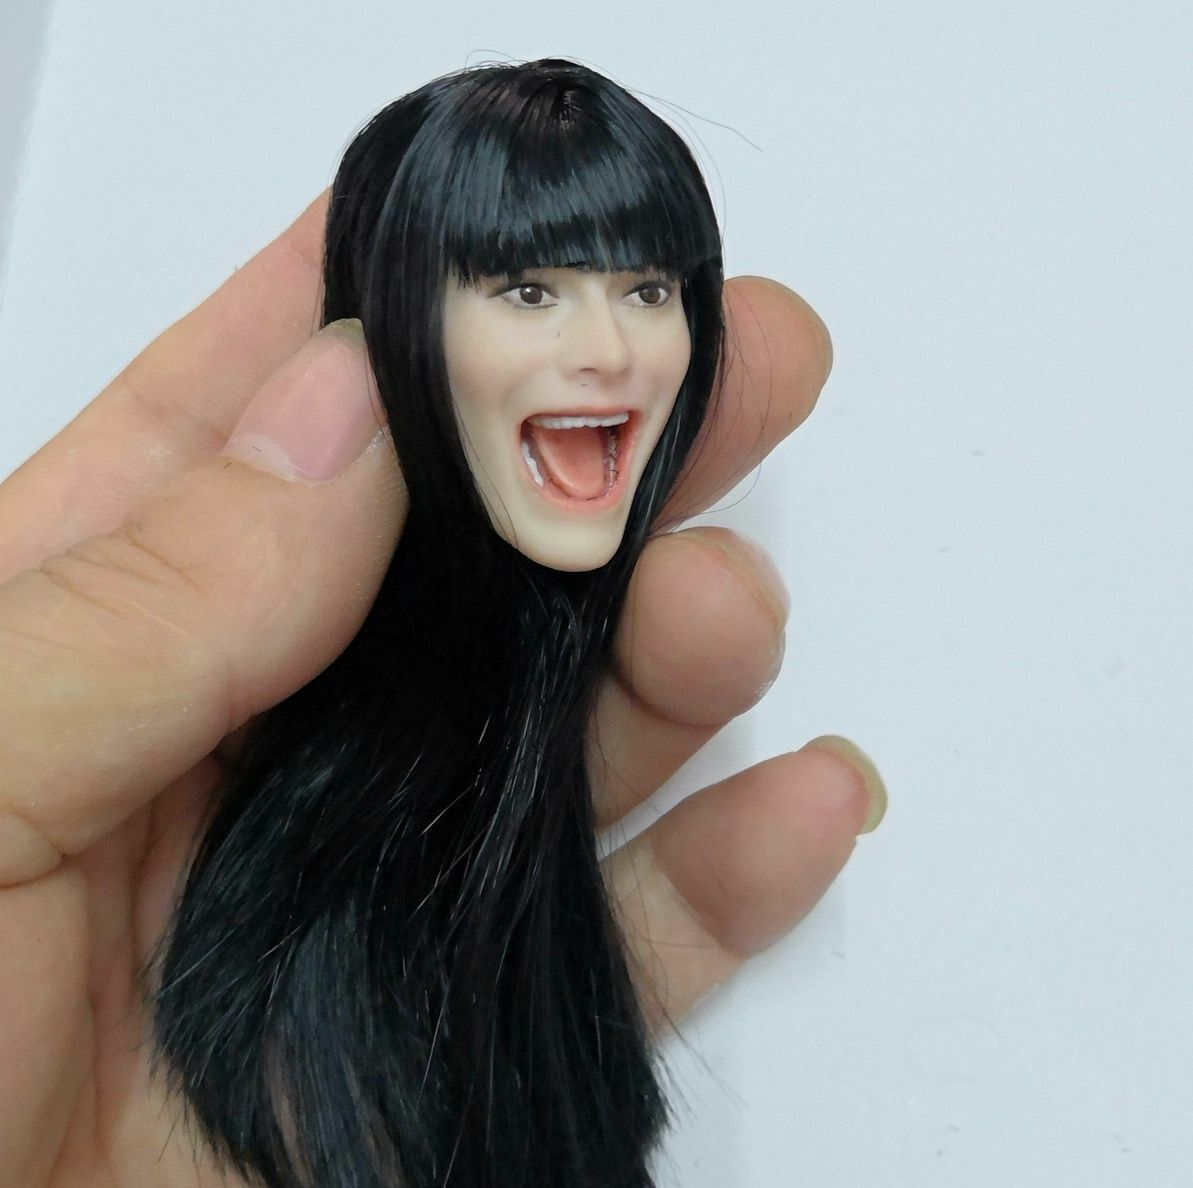 1 6 Singer Girl Head Sculpt Female Shout Open Mouth Head Carving F12 Figure Body